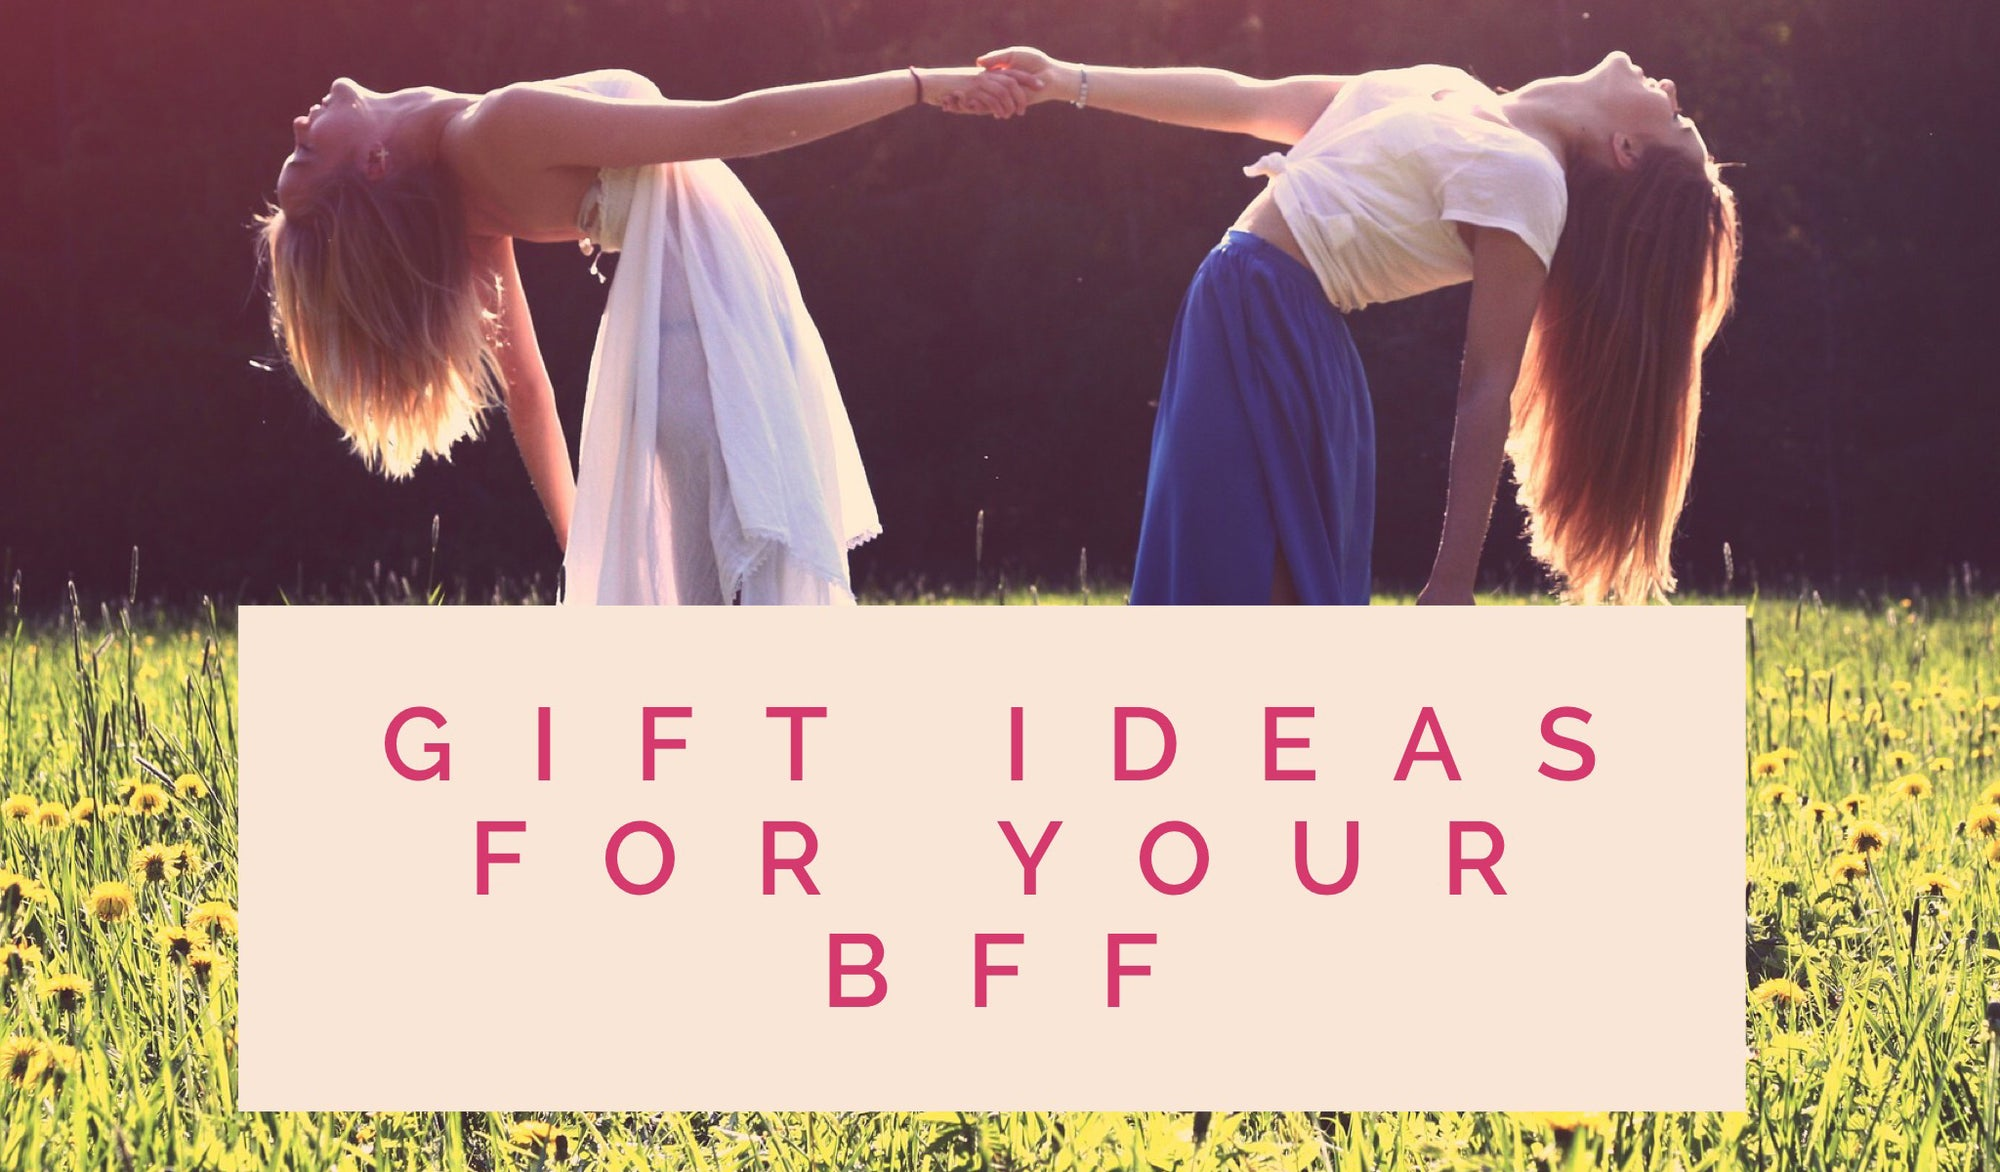 Gift Ideas for your BFF Best Friend Gift Ideas